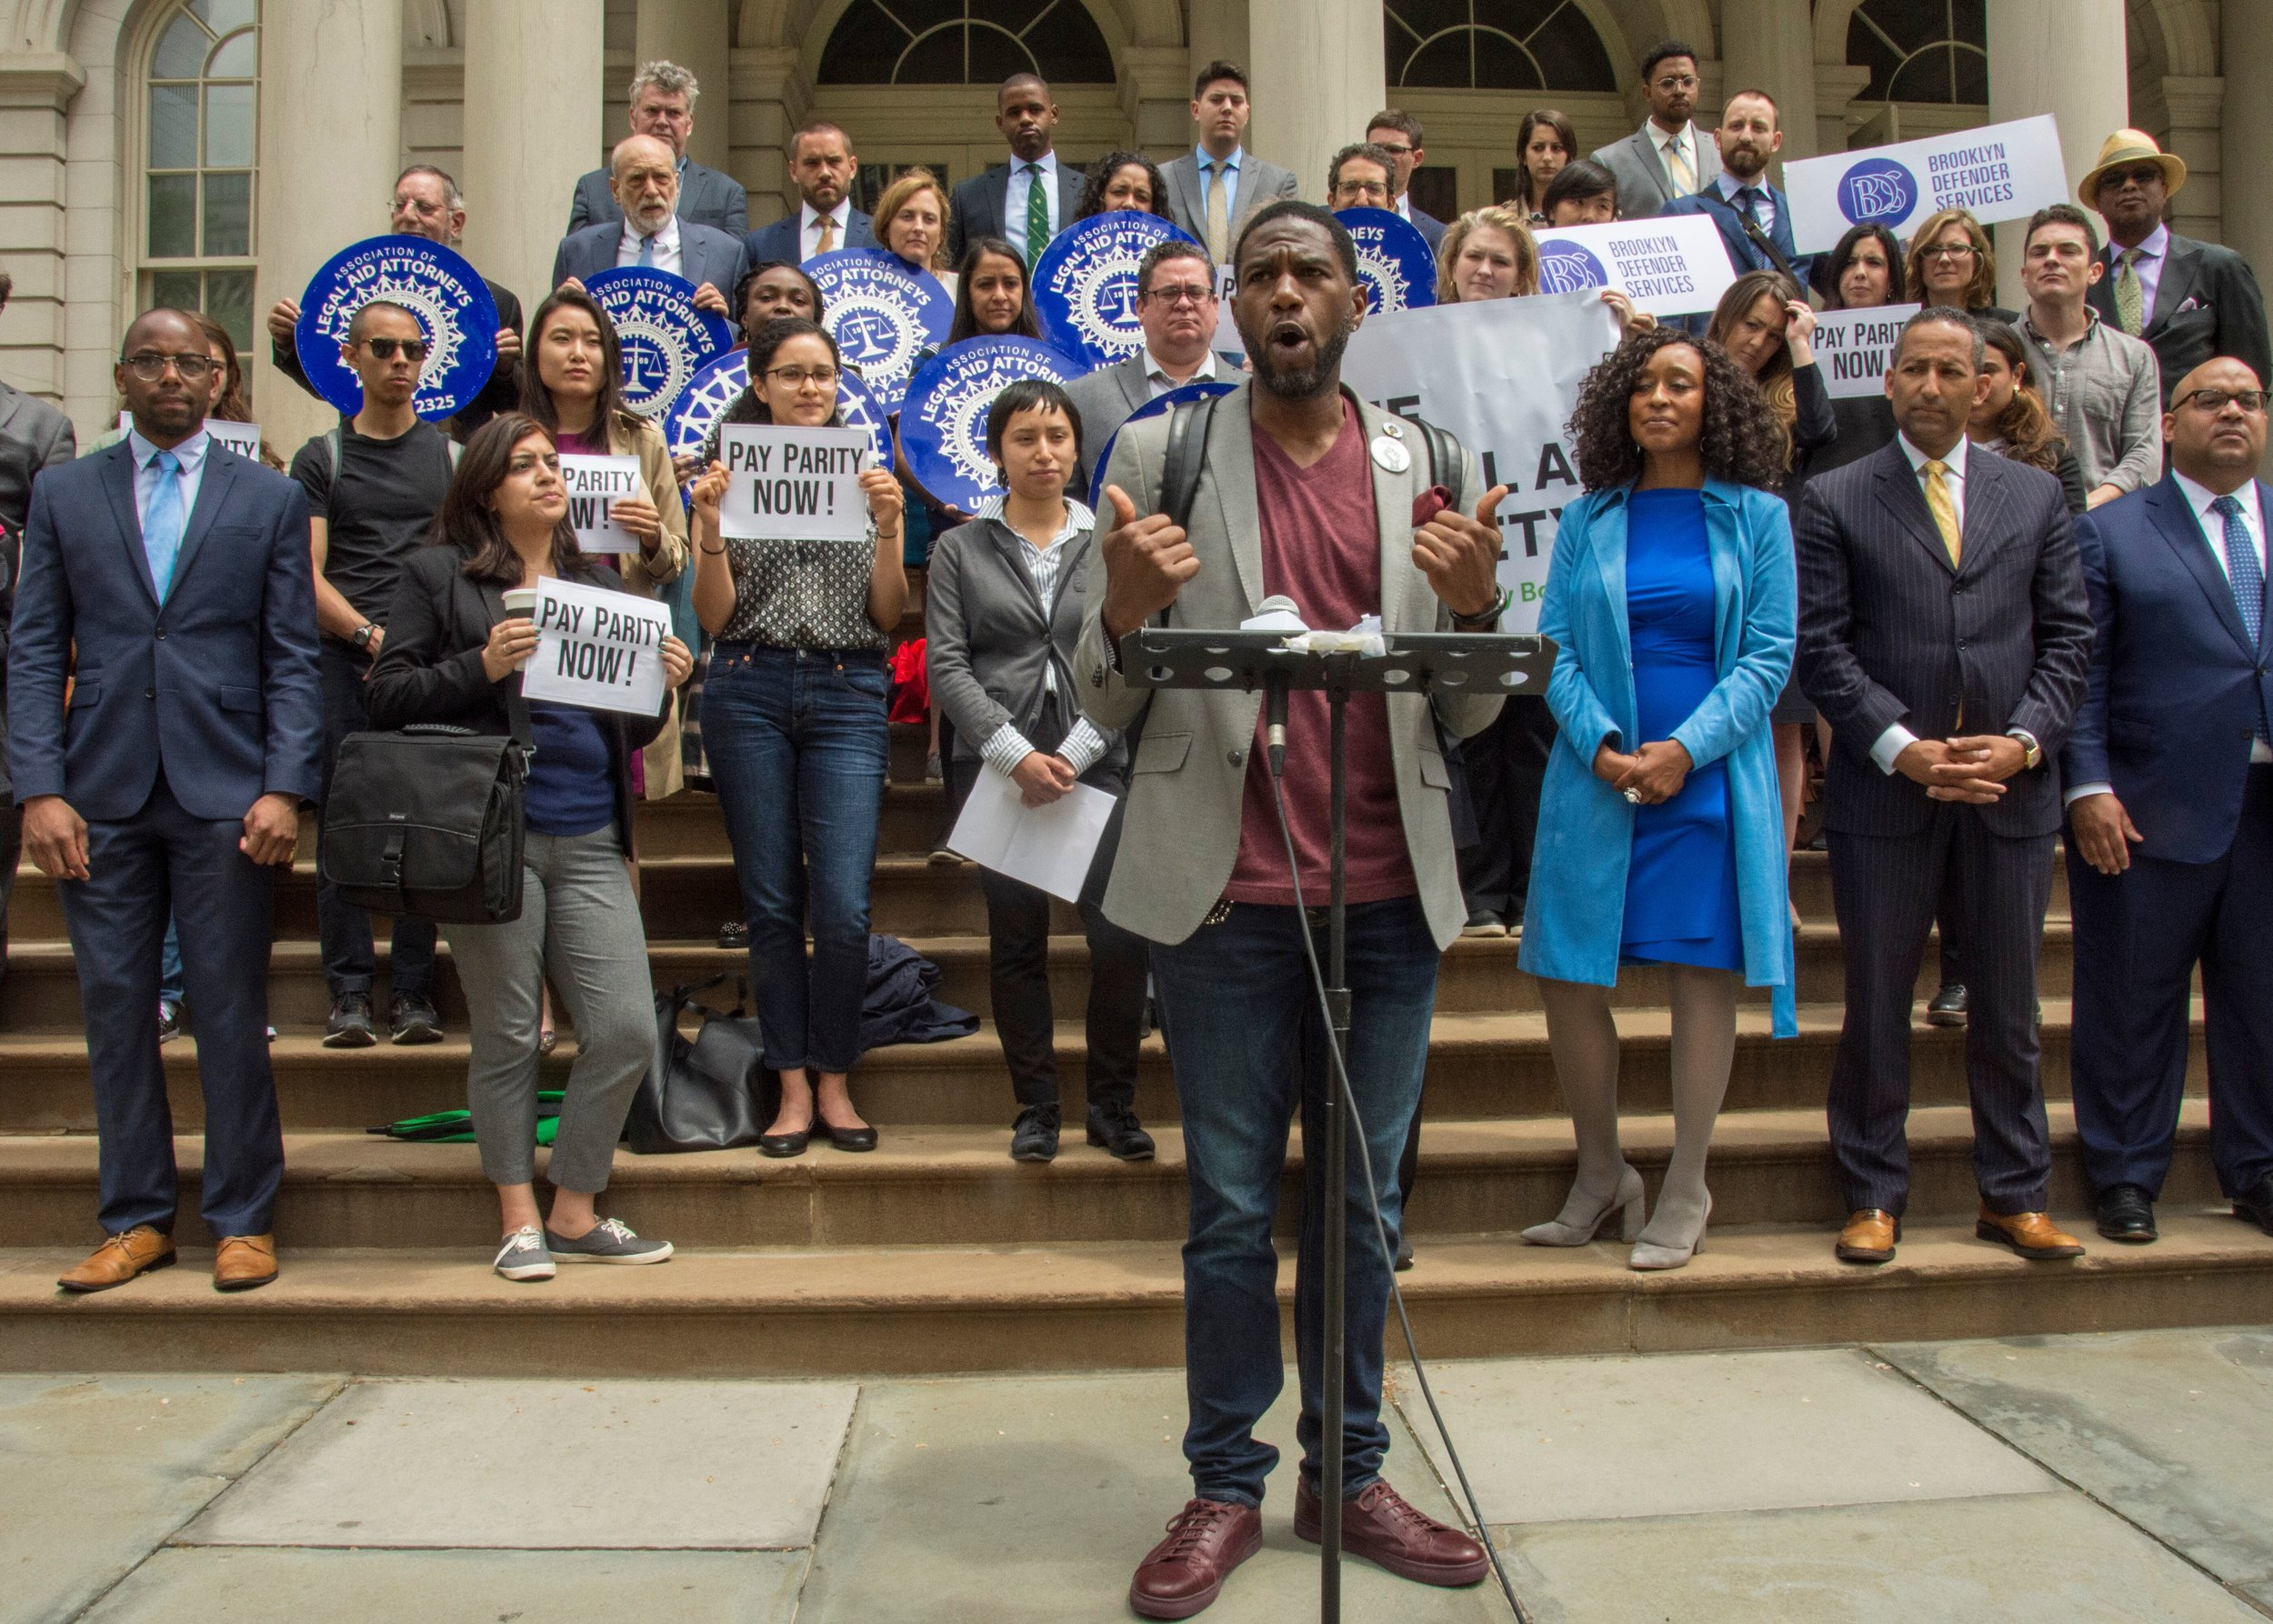 Public Advocate Jumaane Williams demonstrated with New York City public defenders. Photo via The Legal Aid Society.